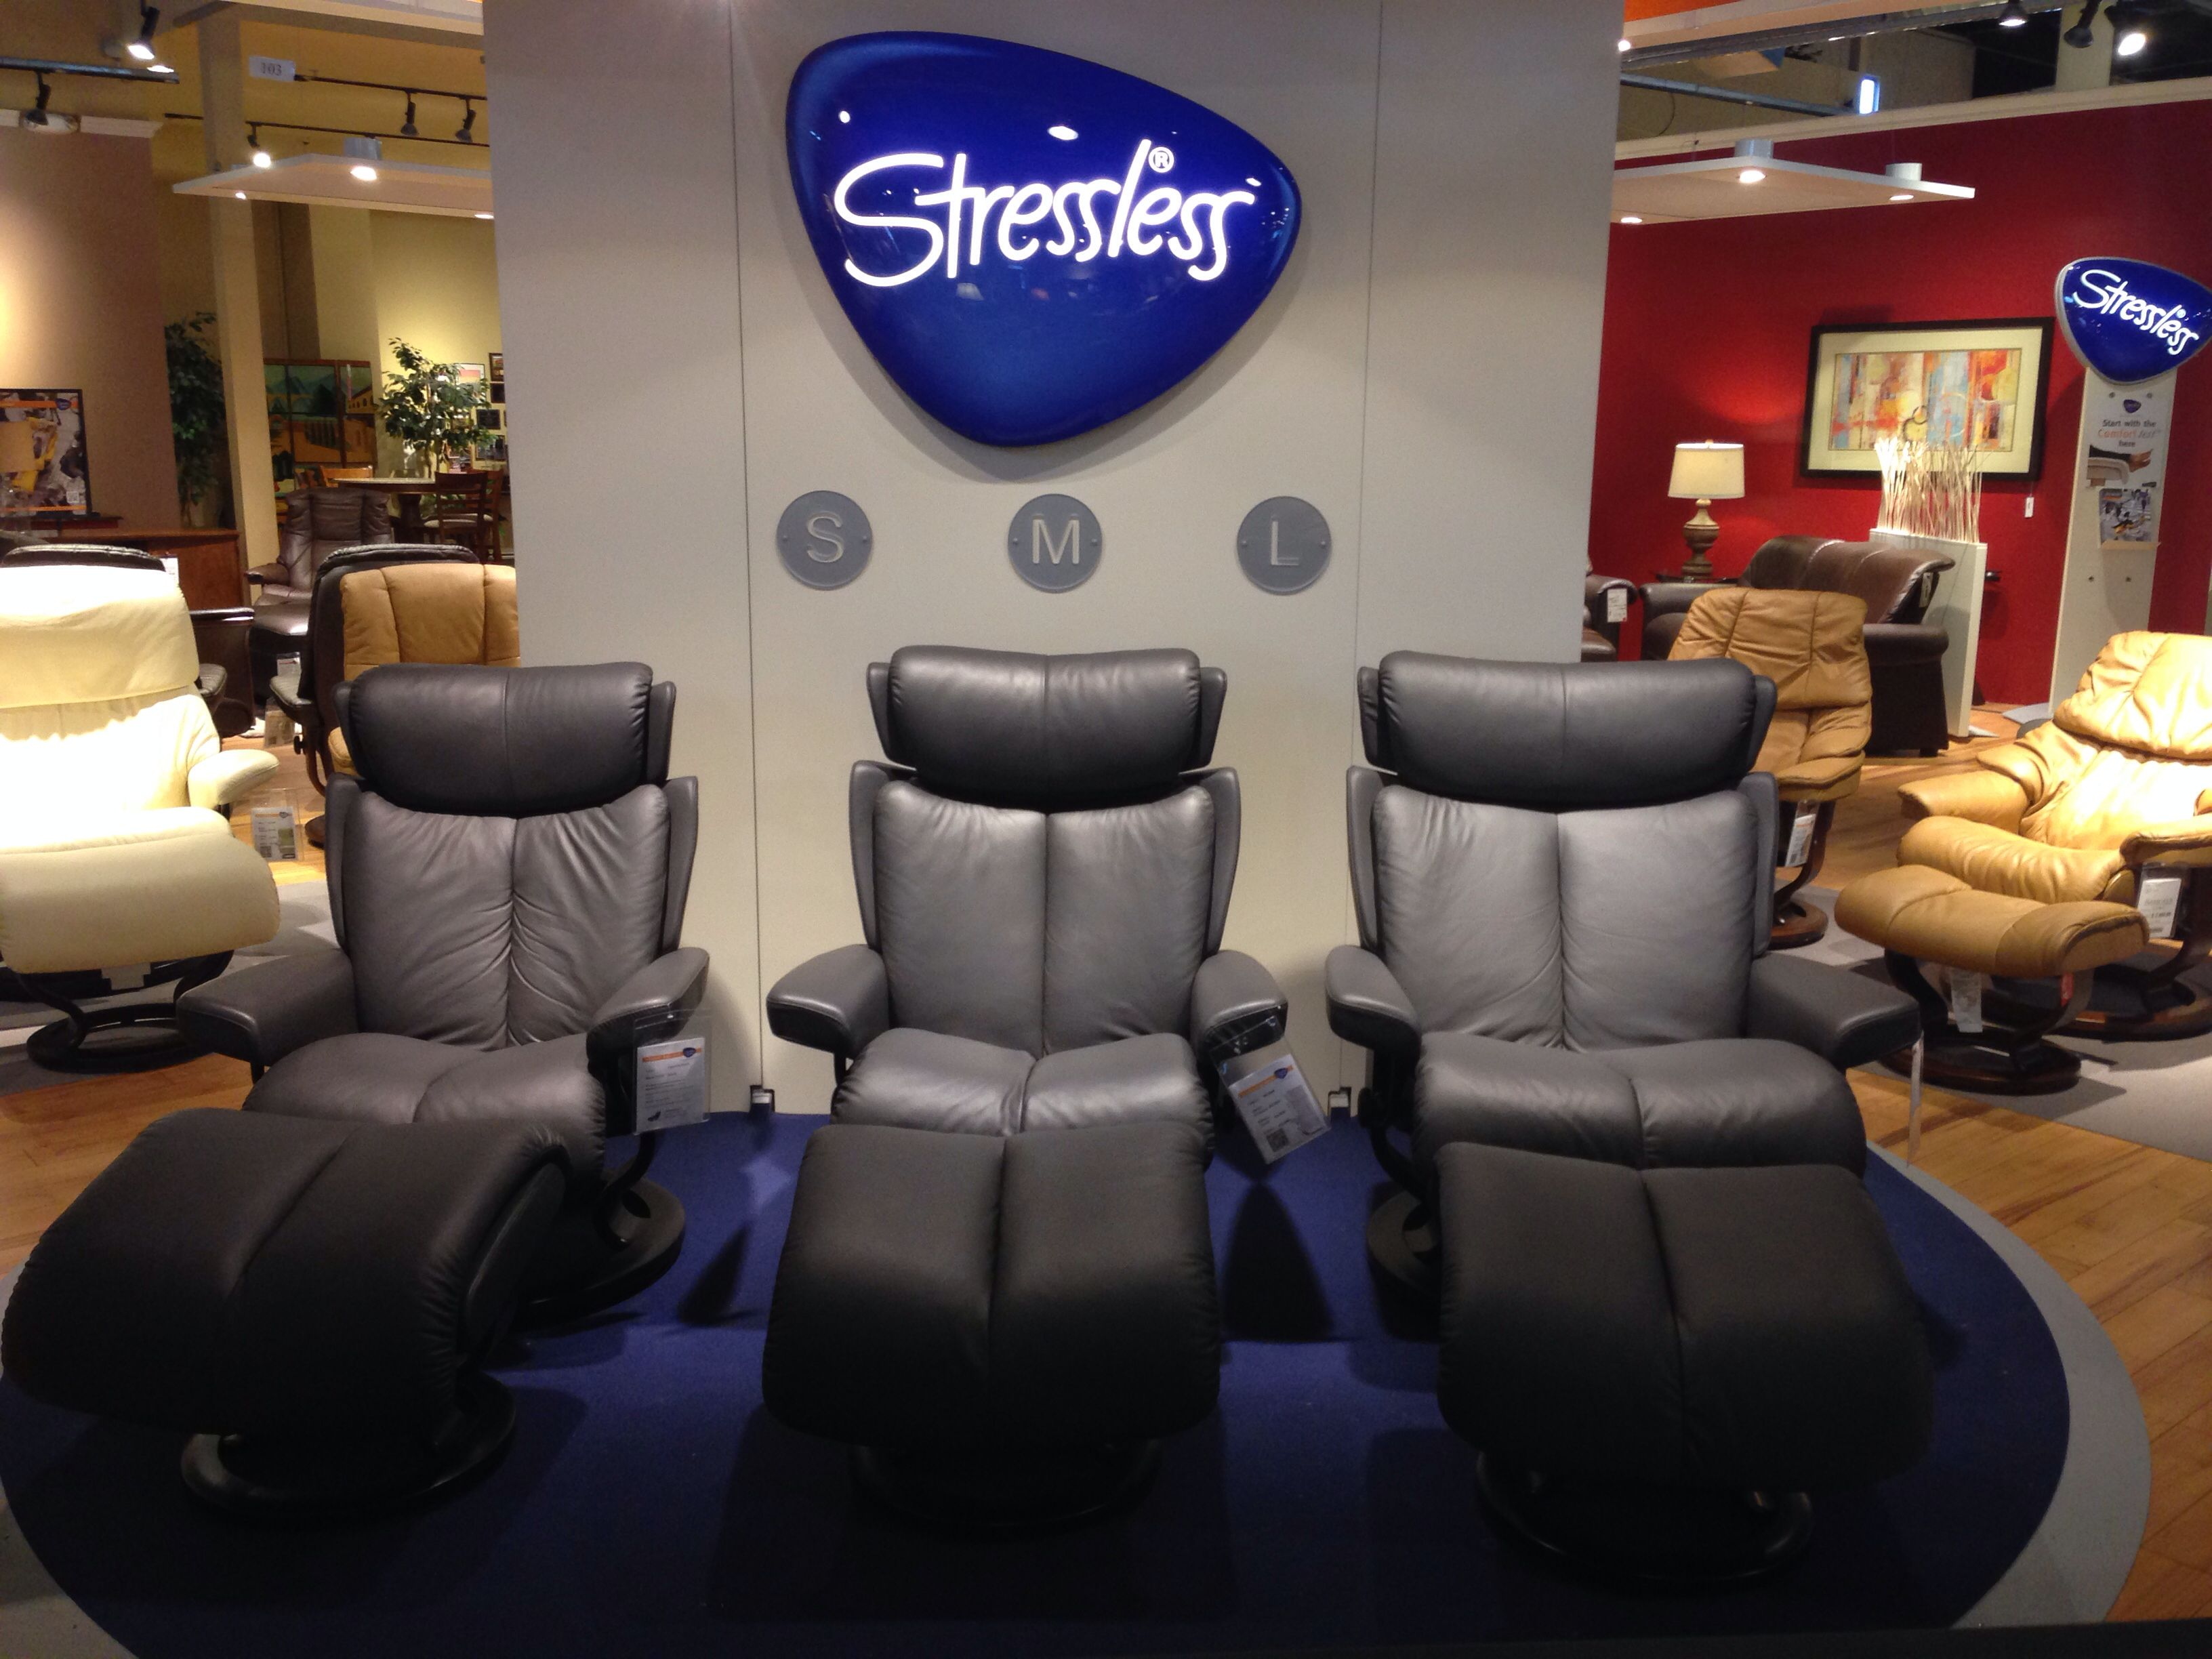 One of the most comfortable chairs on Earth. Find the size that's just right for you